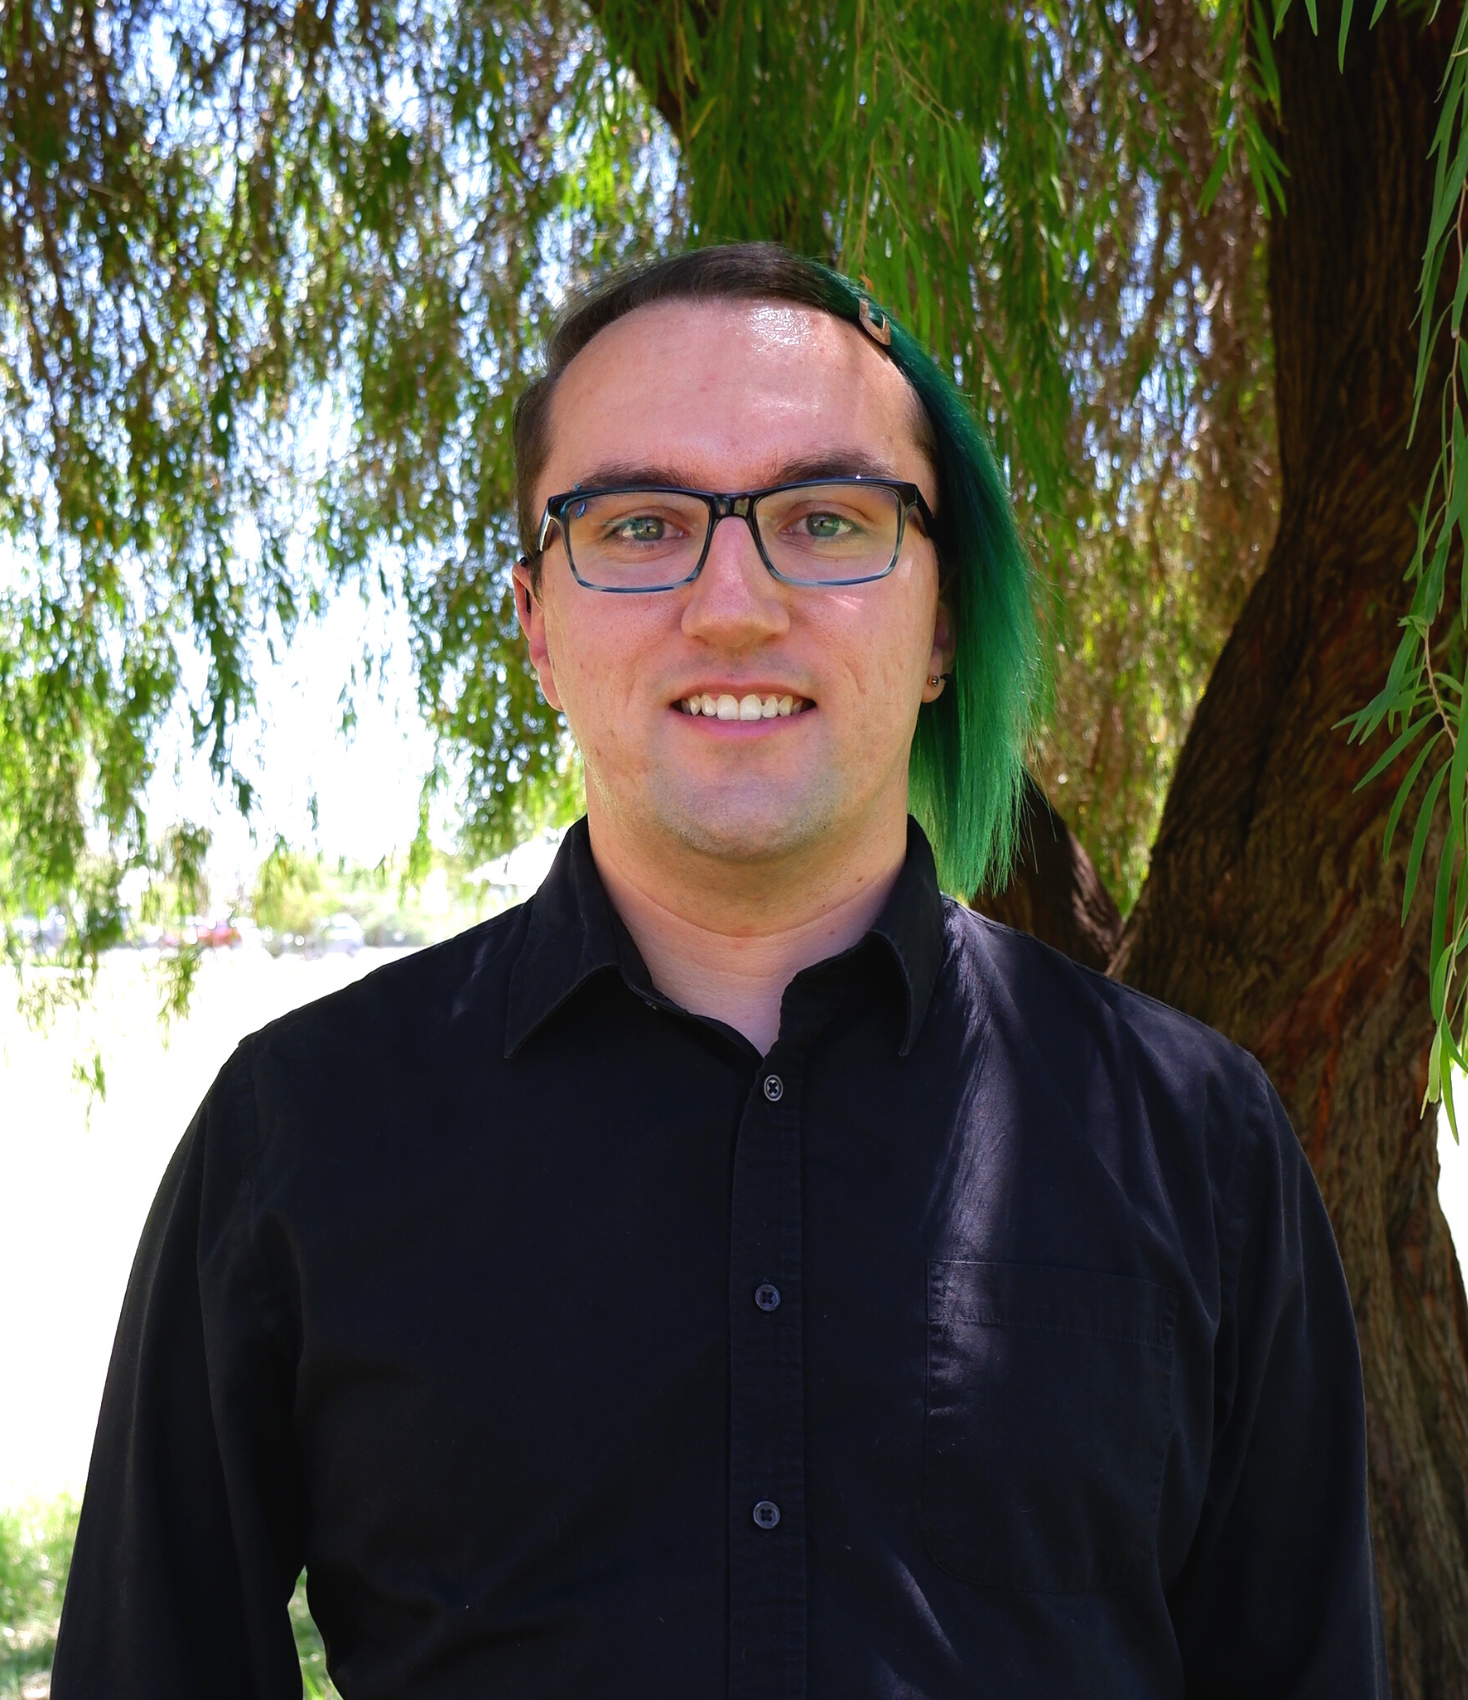 smiling young person with glasses and green hair parted to the right and clipped away from their face, wearing a black button down shirt with a willow tree in the background